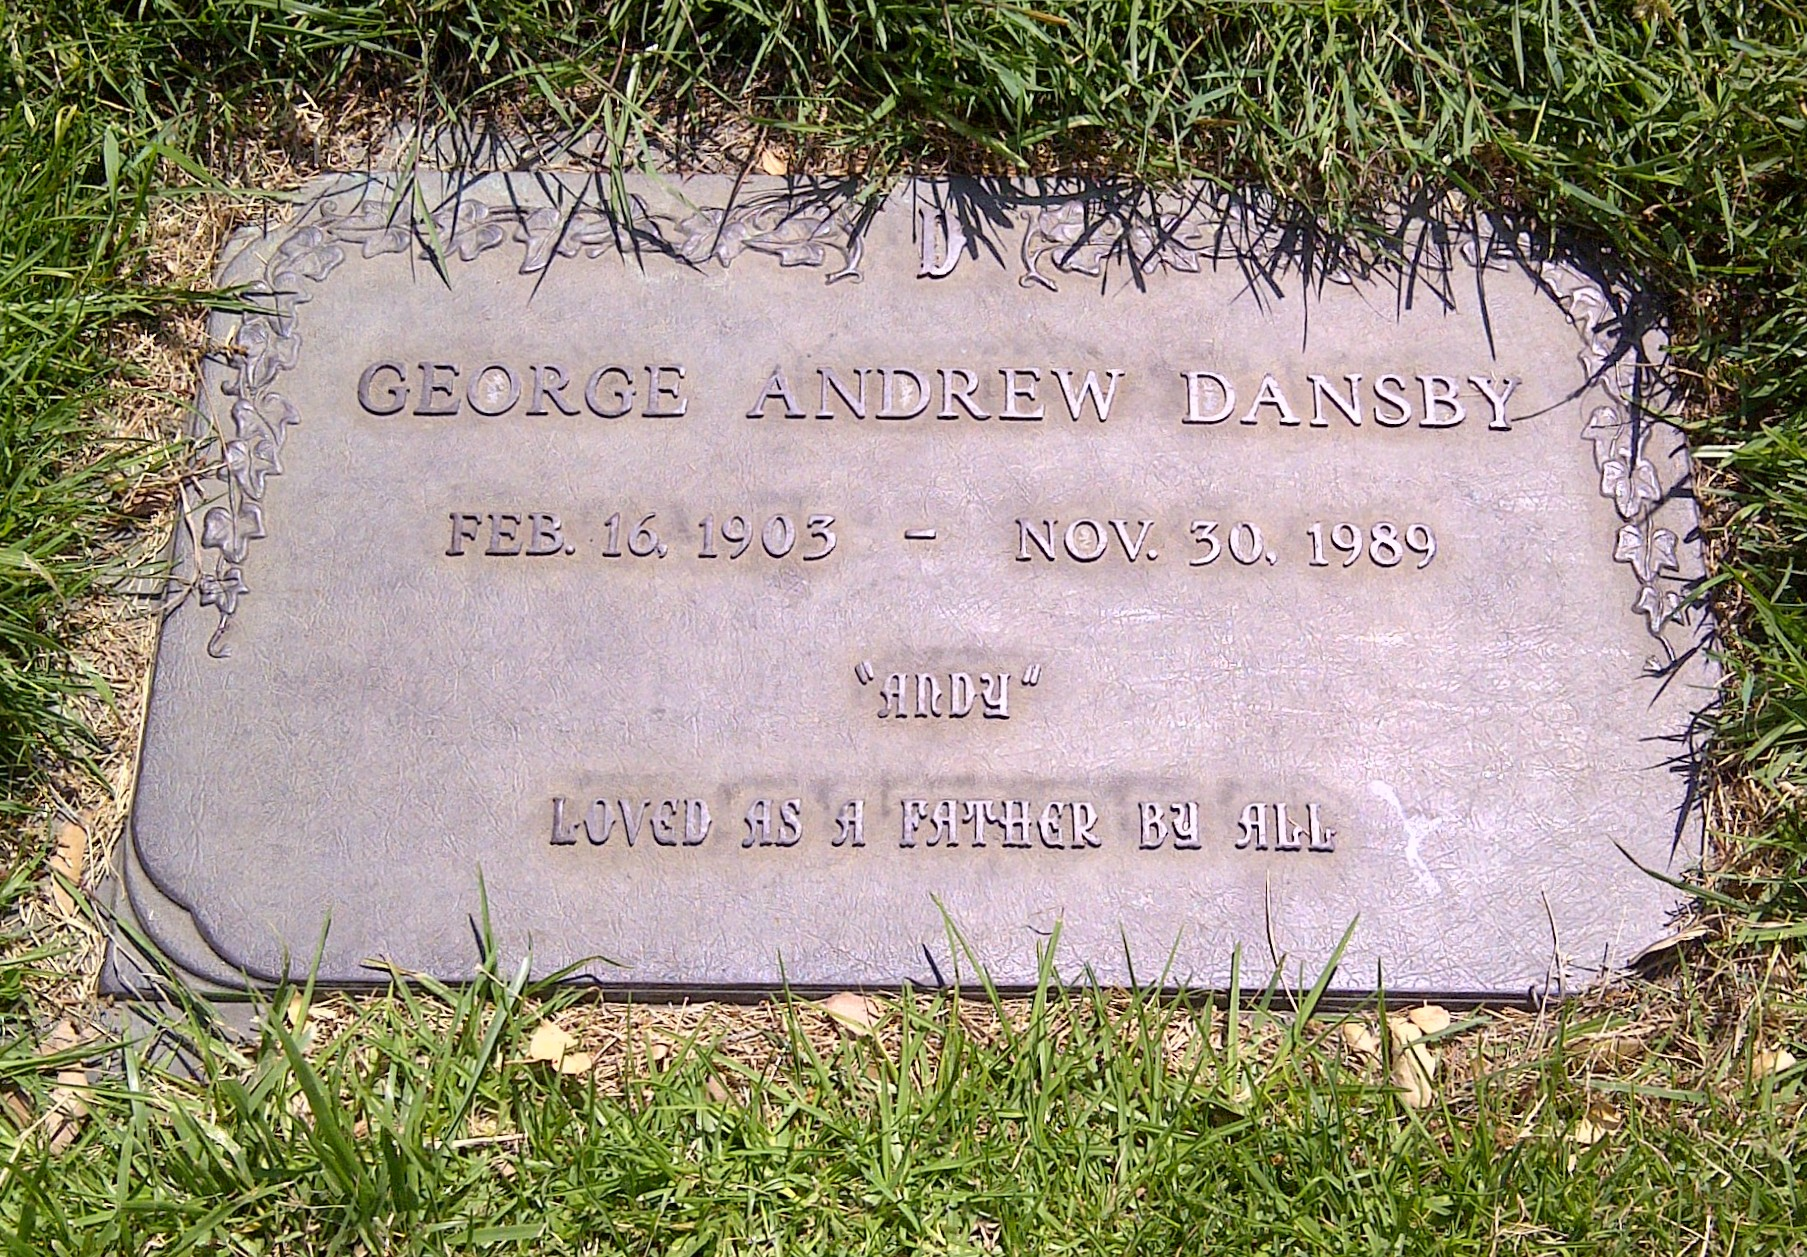 George Andrew Dansby